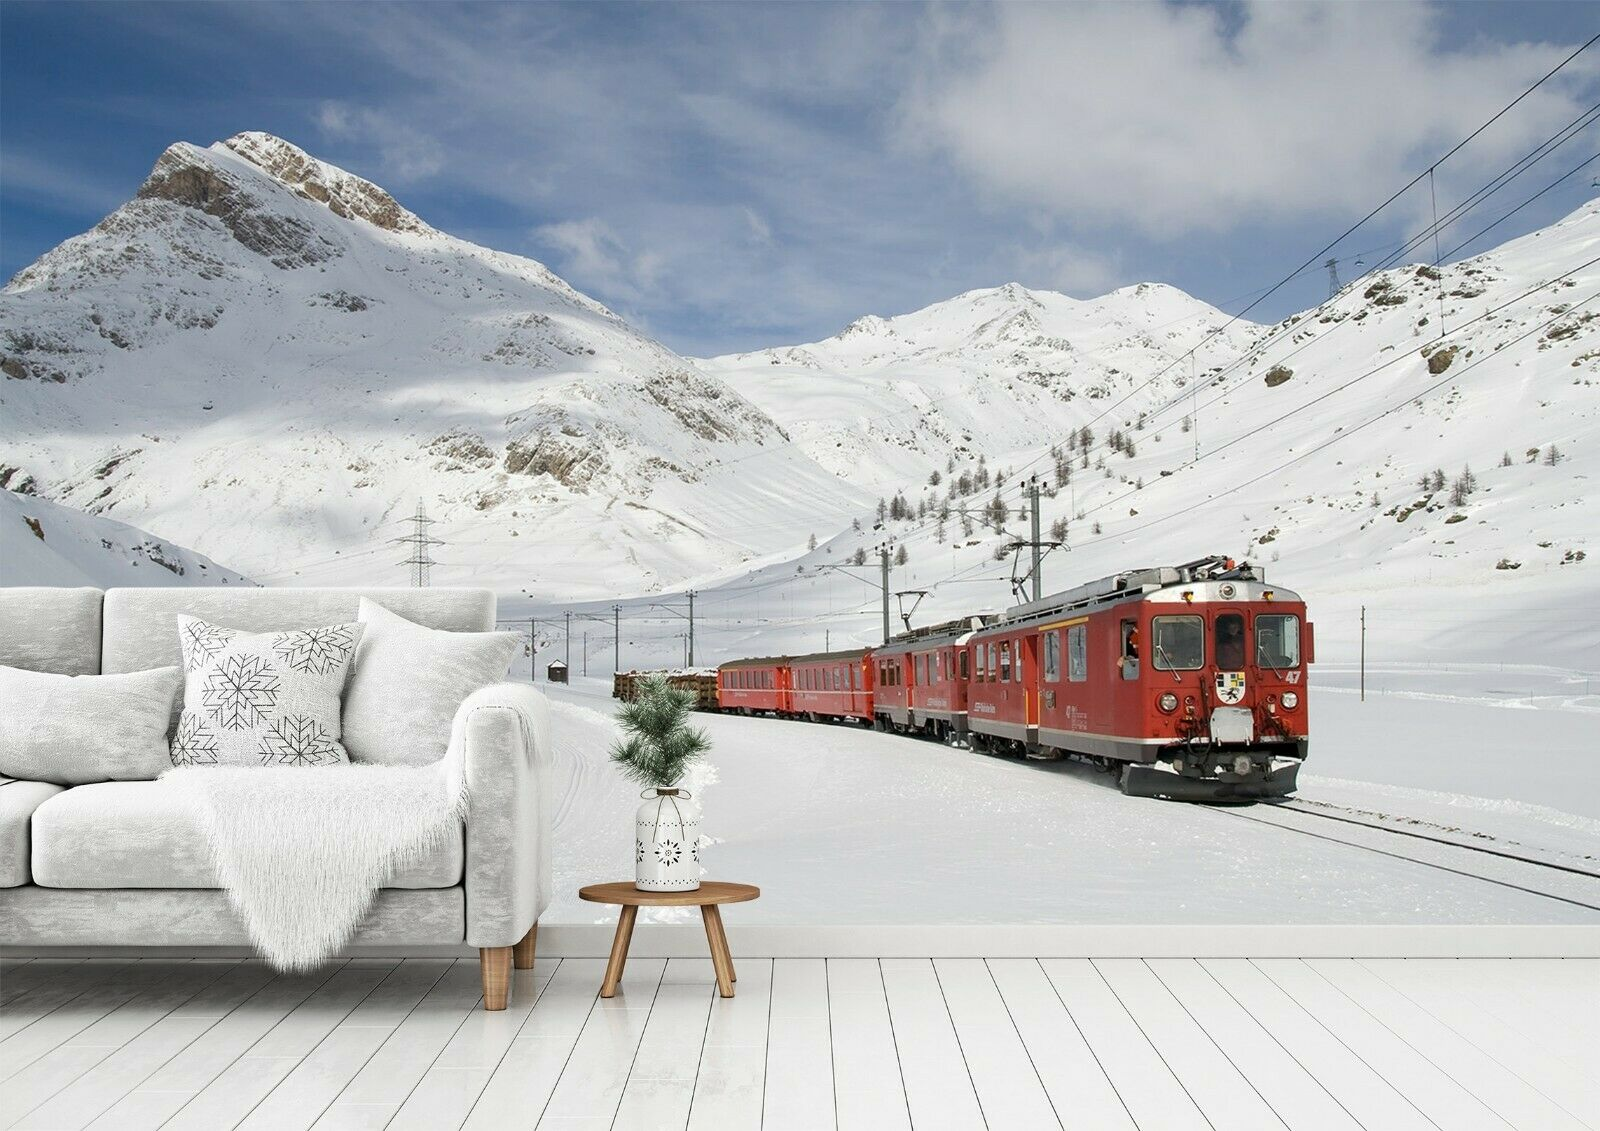 3D Snow Mountain Train N45 Transport WandPapier Mural Self-adhesive Removable Amy